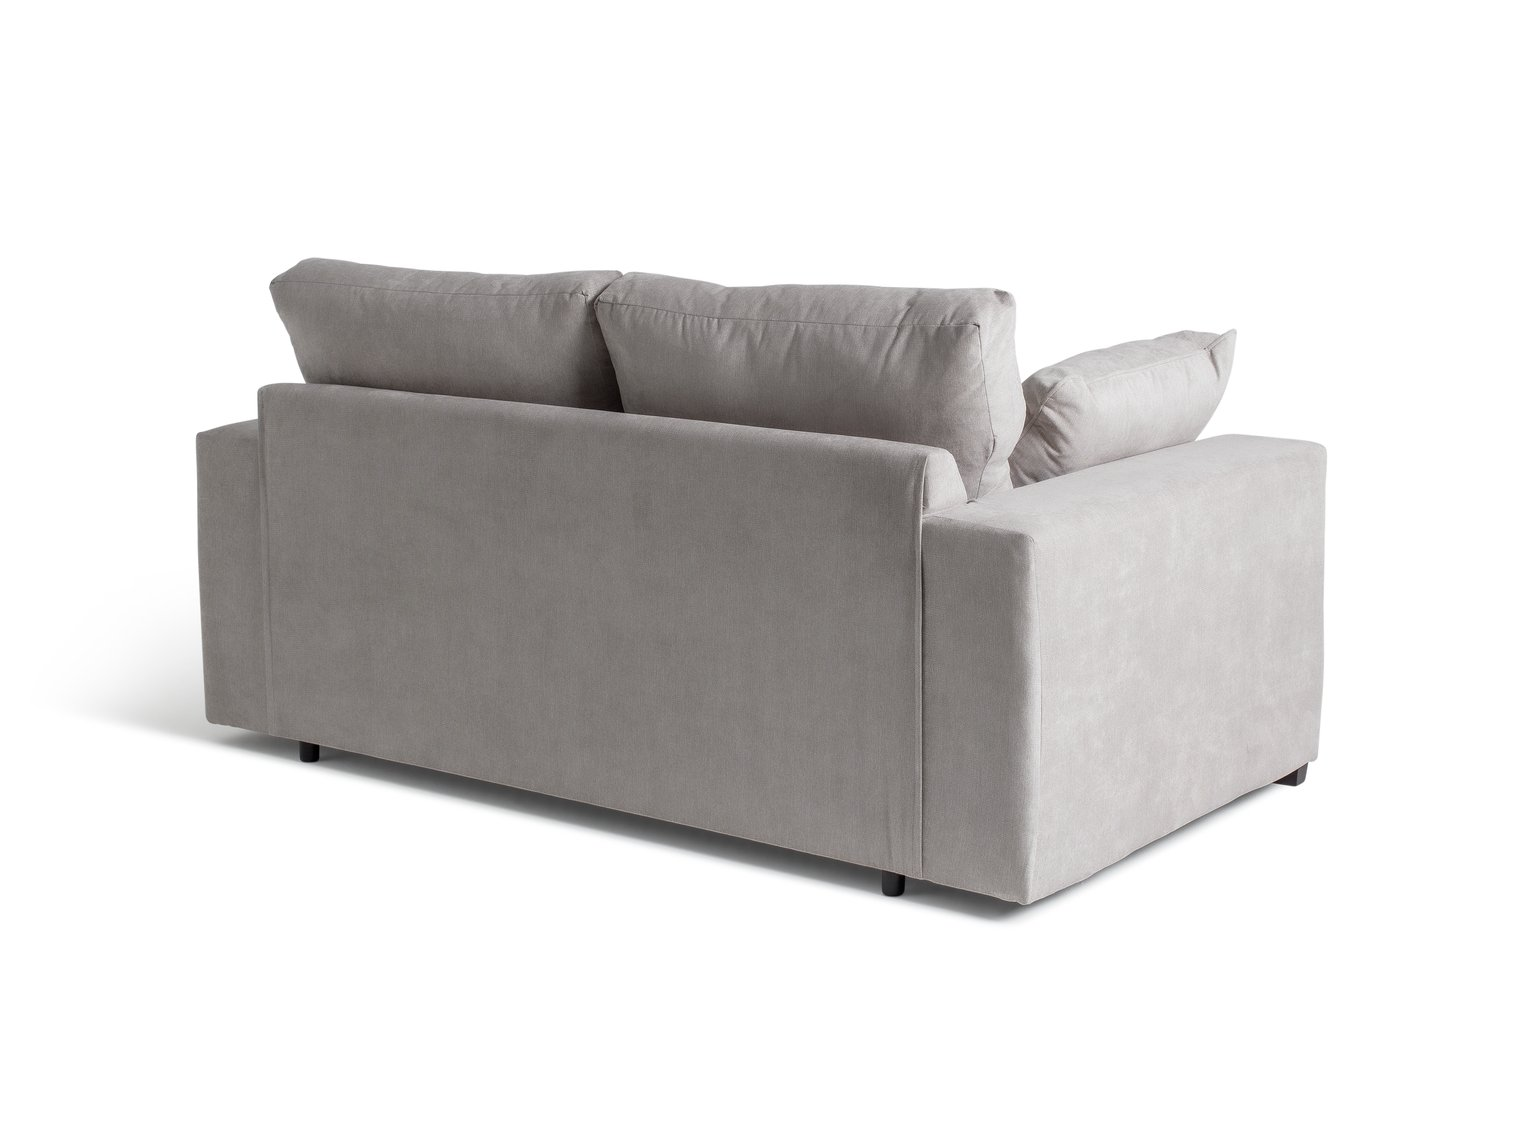 Excellent Argos Home Eton 2 Seater Fabric Sofa Bed Grey 5656978 Bralicious Painted Fabric Chair Ideas Braliciousco